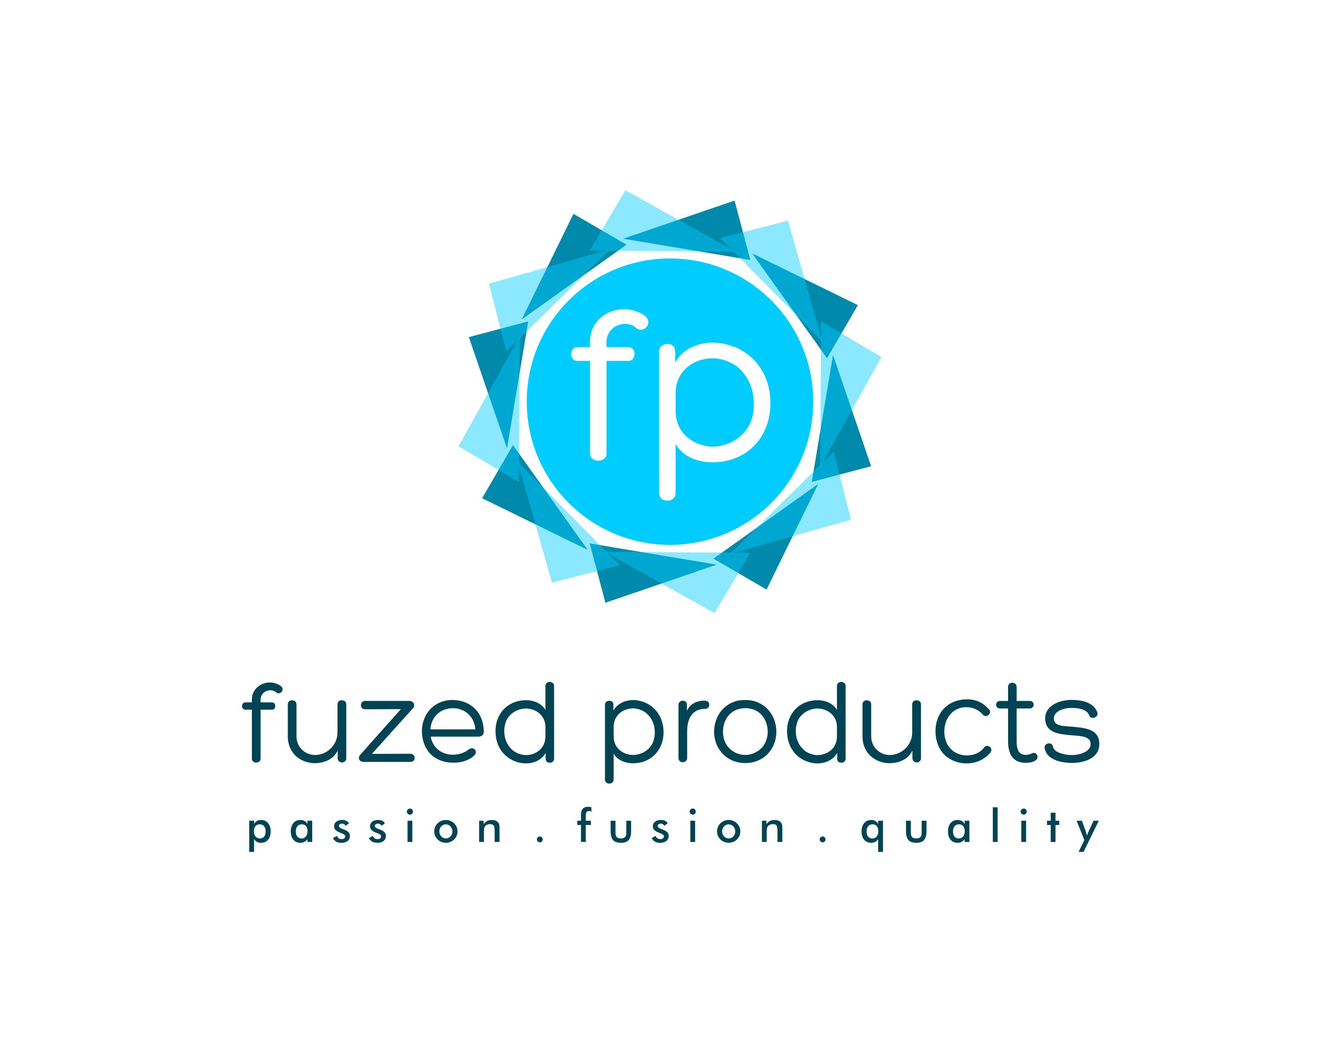 FuzedProducts